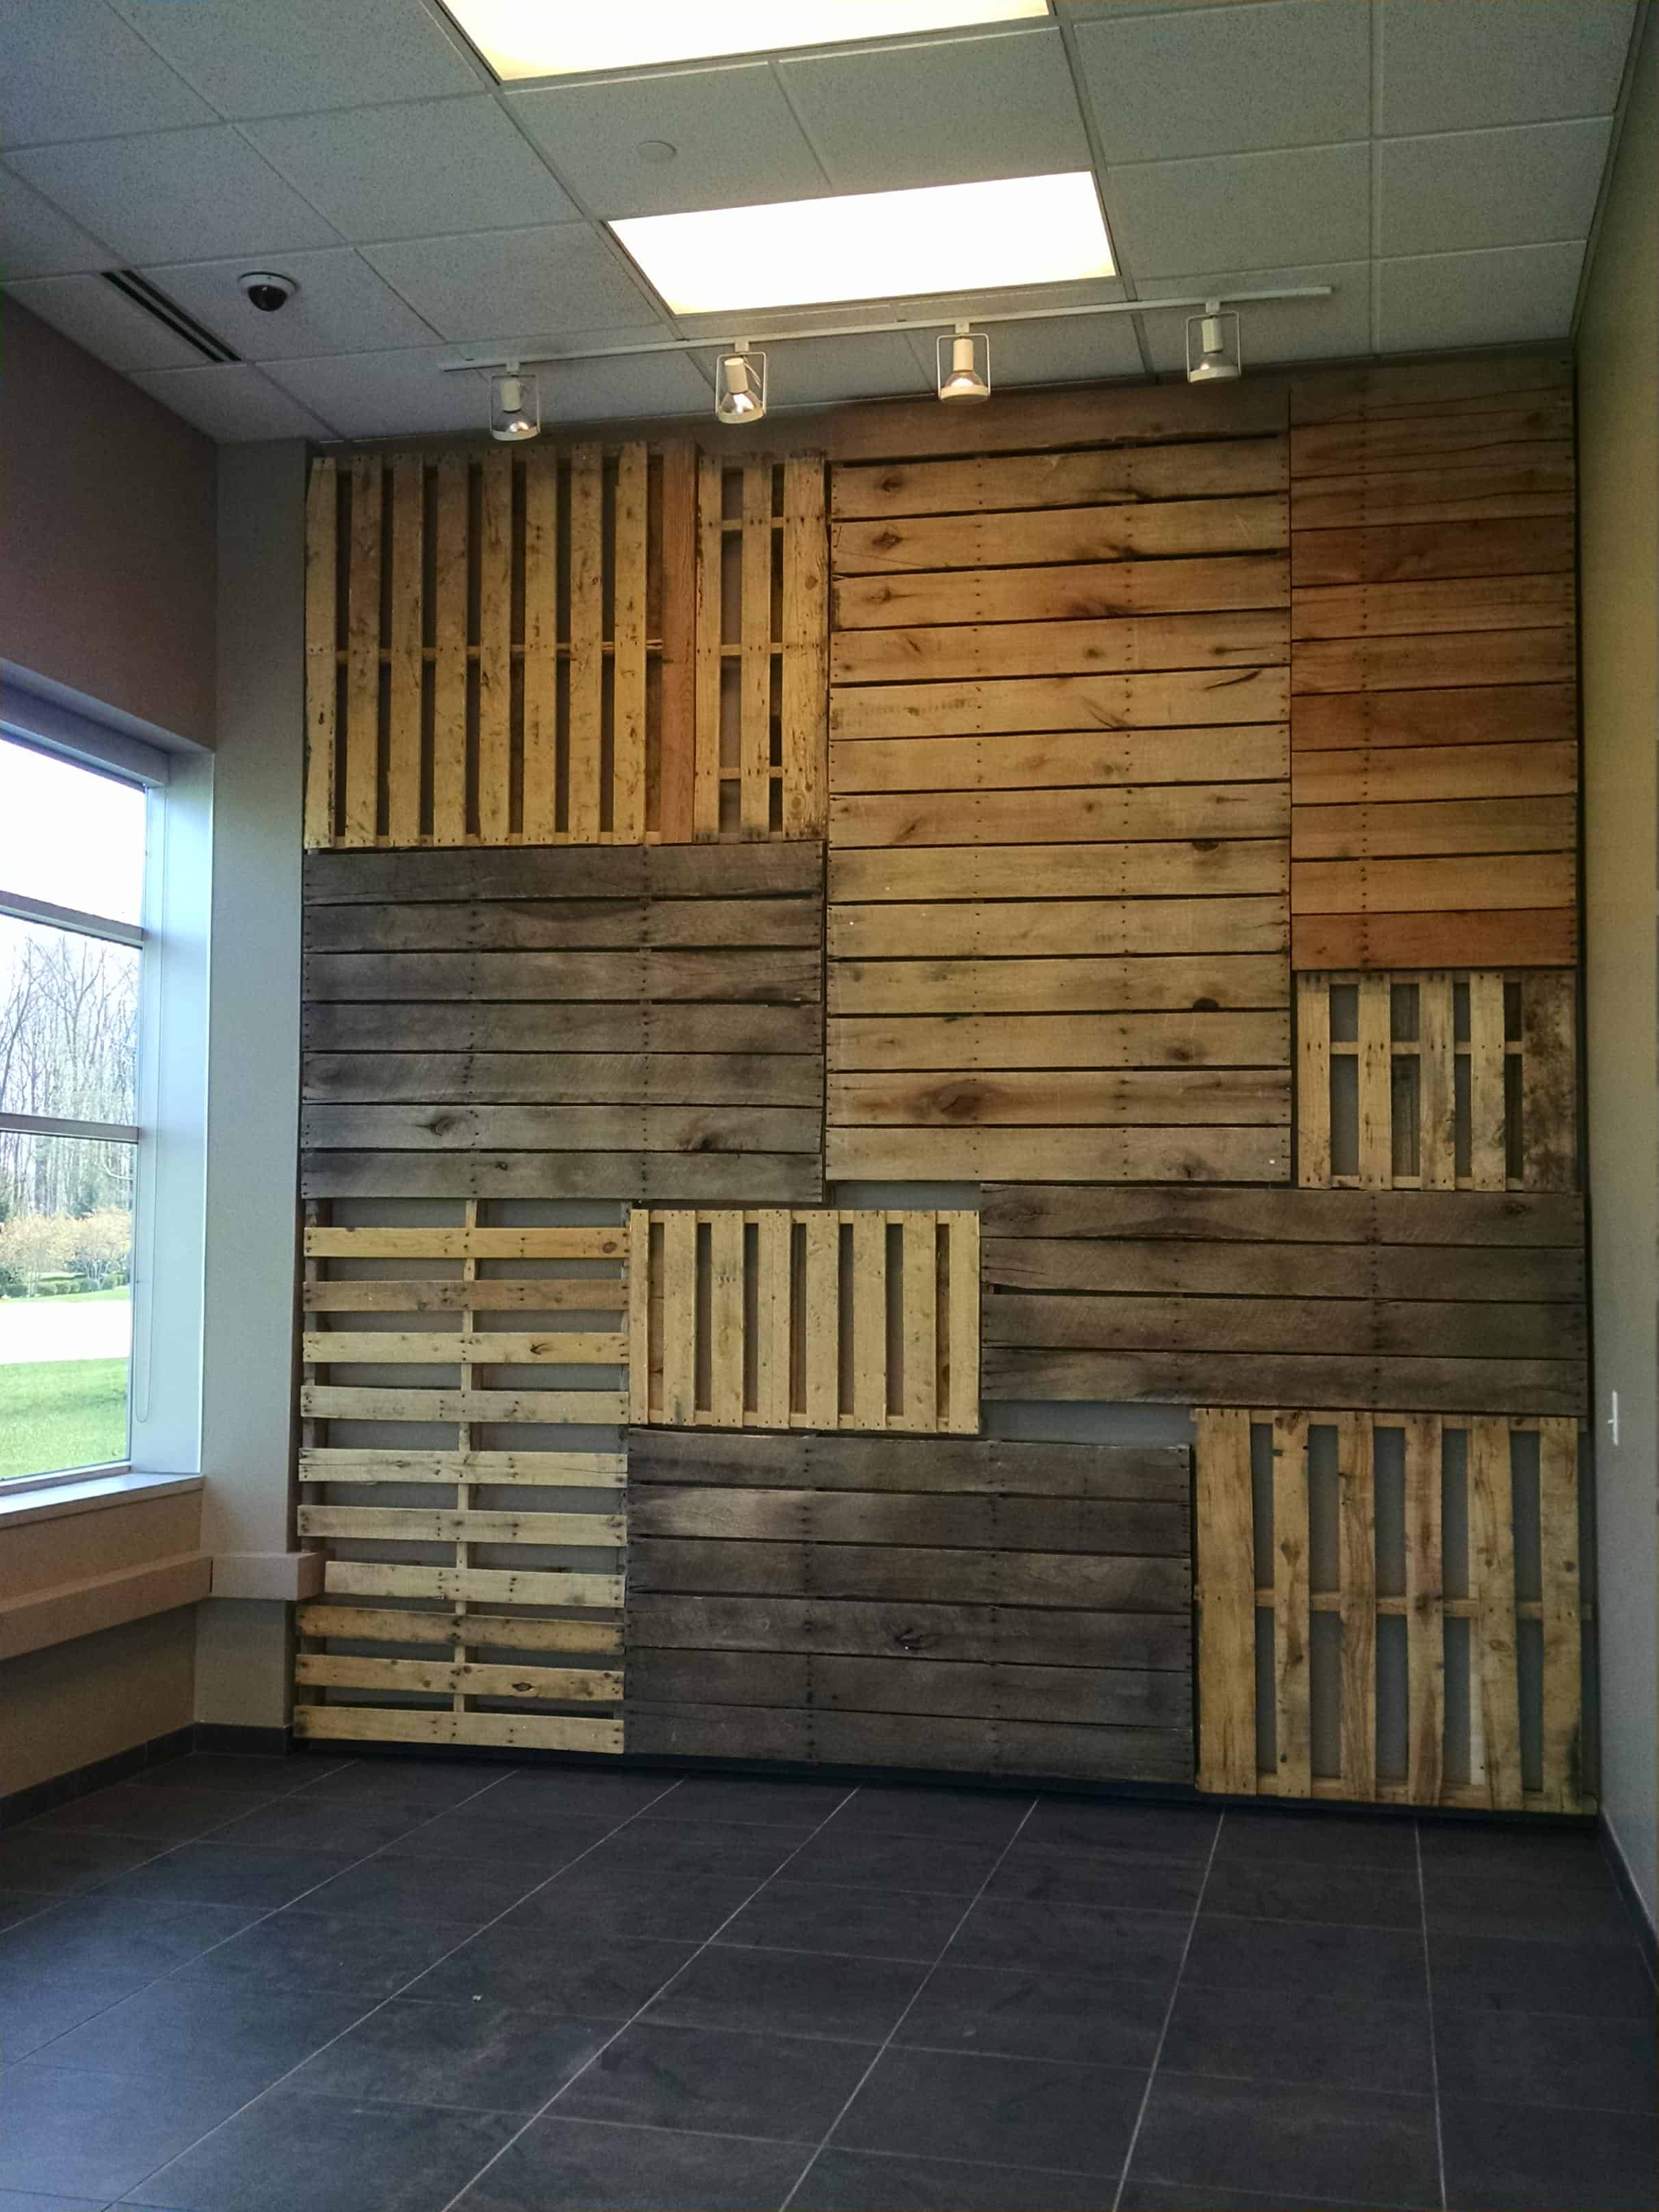 Pallet Walls & Pallet Doors • DIY Wood Pallet Projects & Ideas ...